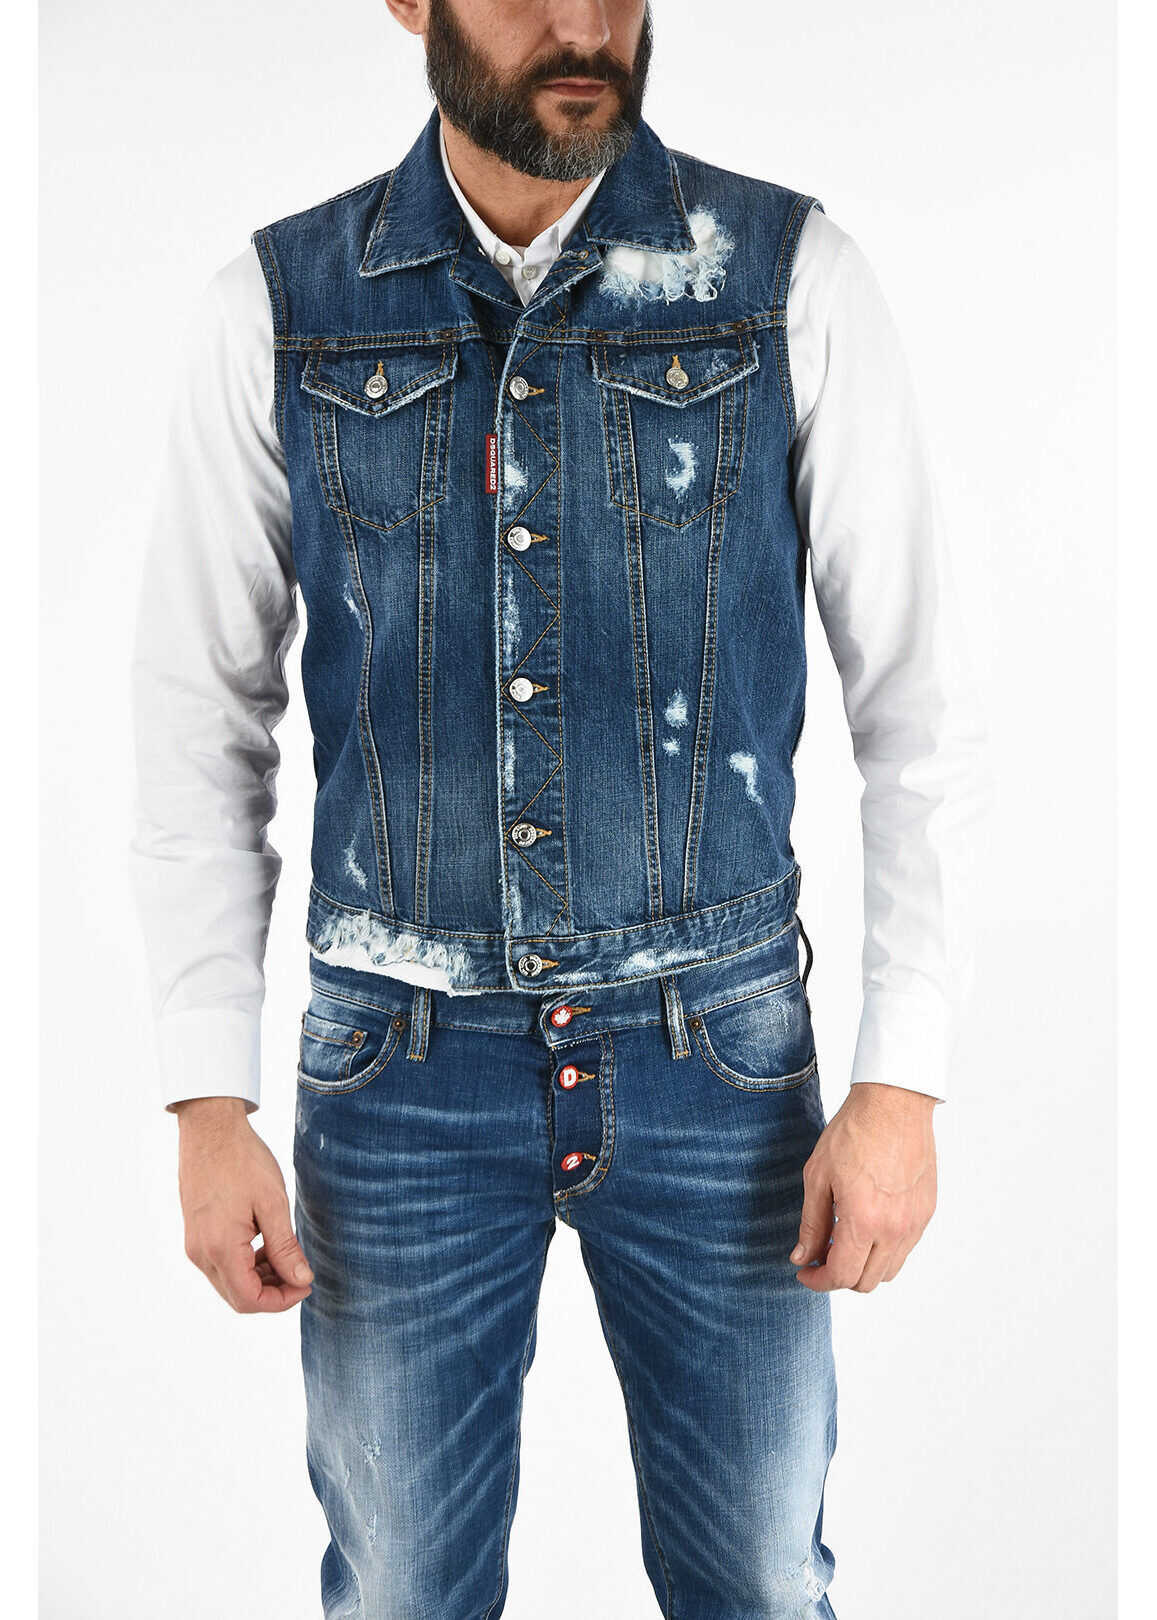 DSQUARED2 Distressed Details Sleeveless Denim Jacket BLUE imagine